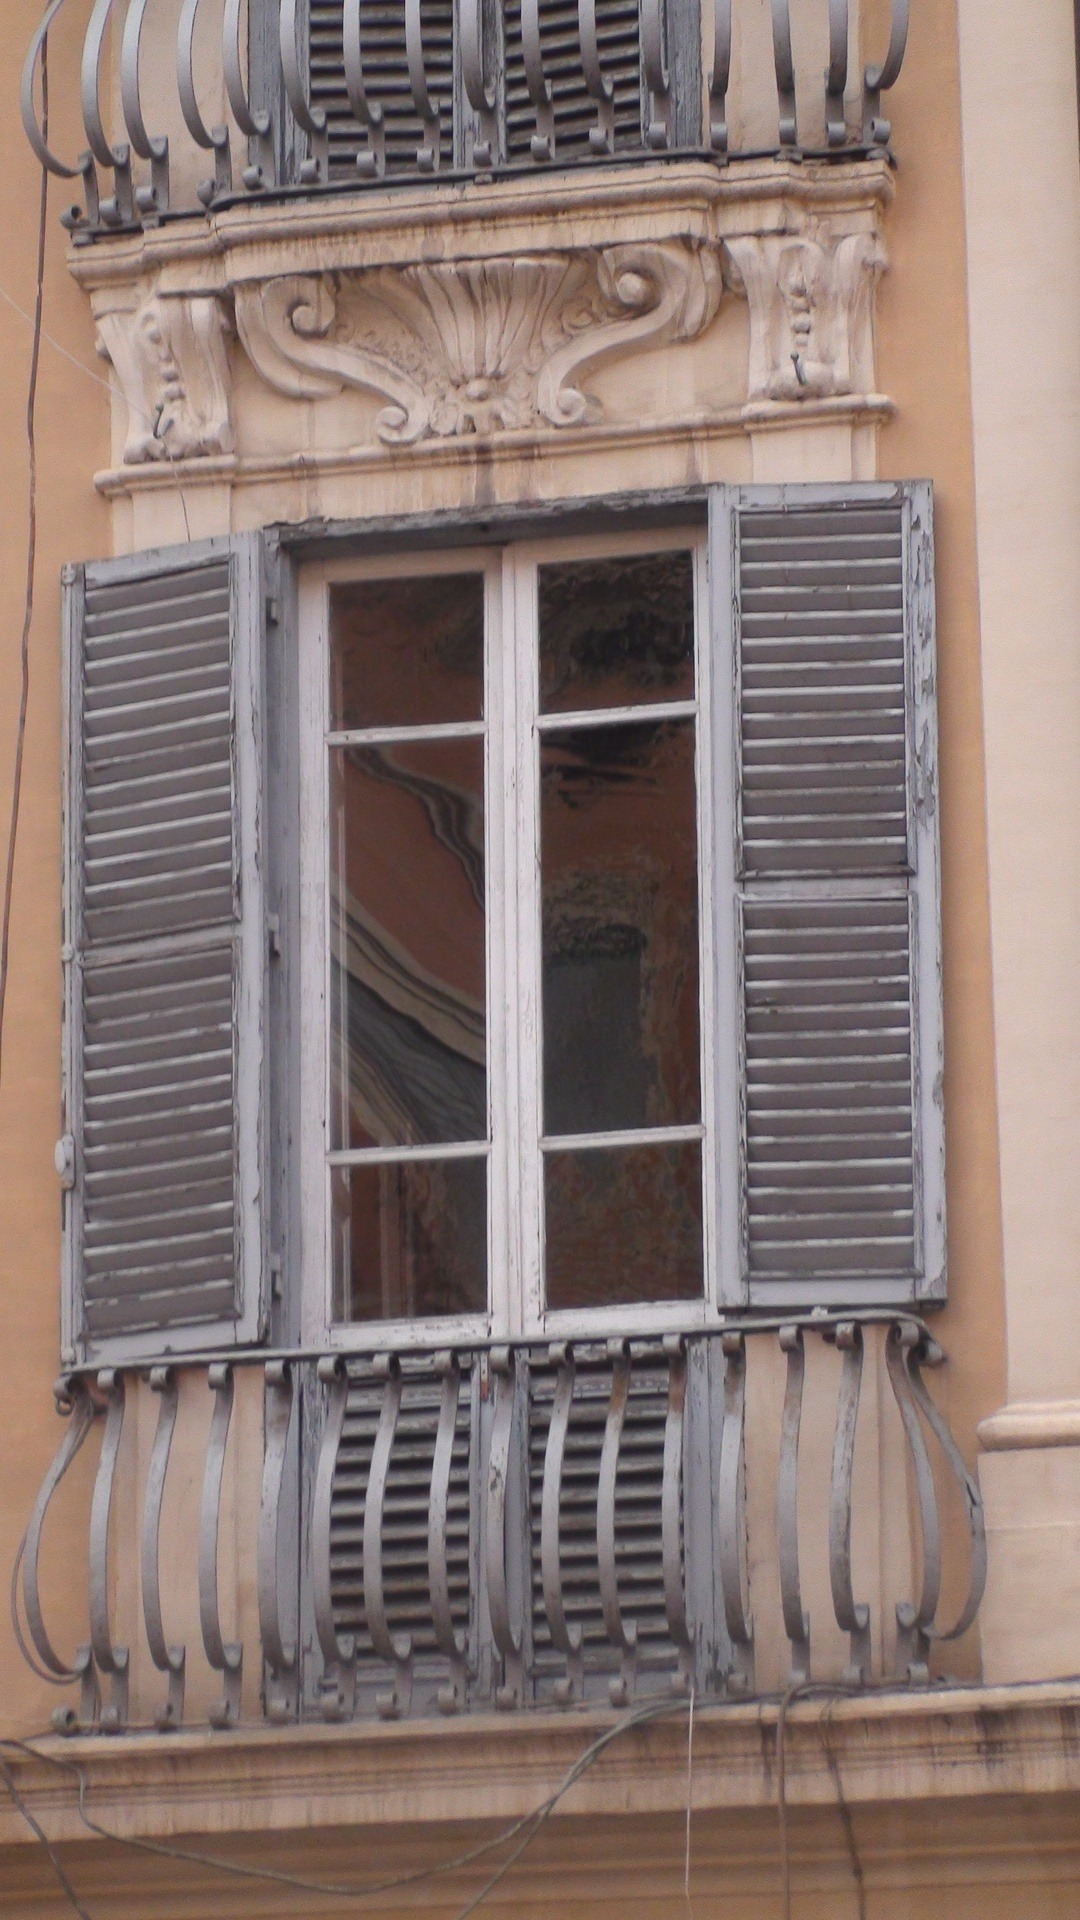 live-2-learn:  window on a roman street